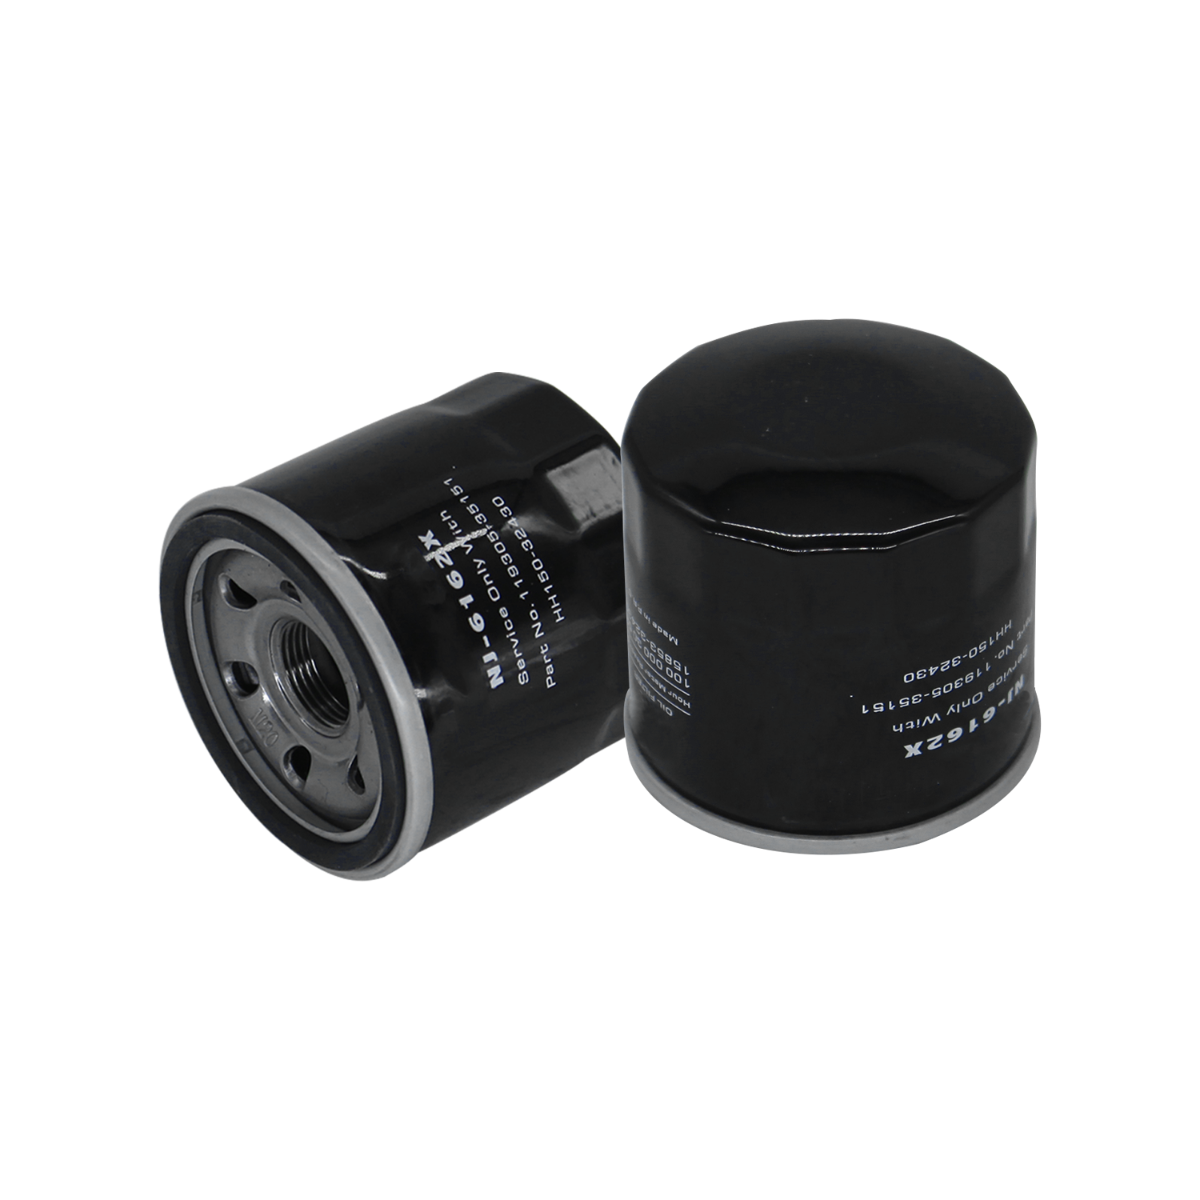 Oil Filter 119305-35150 2Pcs Compatible with Hitachi Zaxis 8 ZX17U-2 ZX8-2